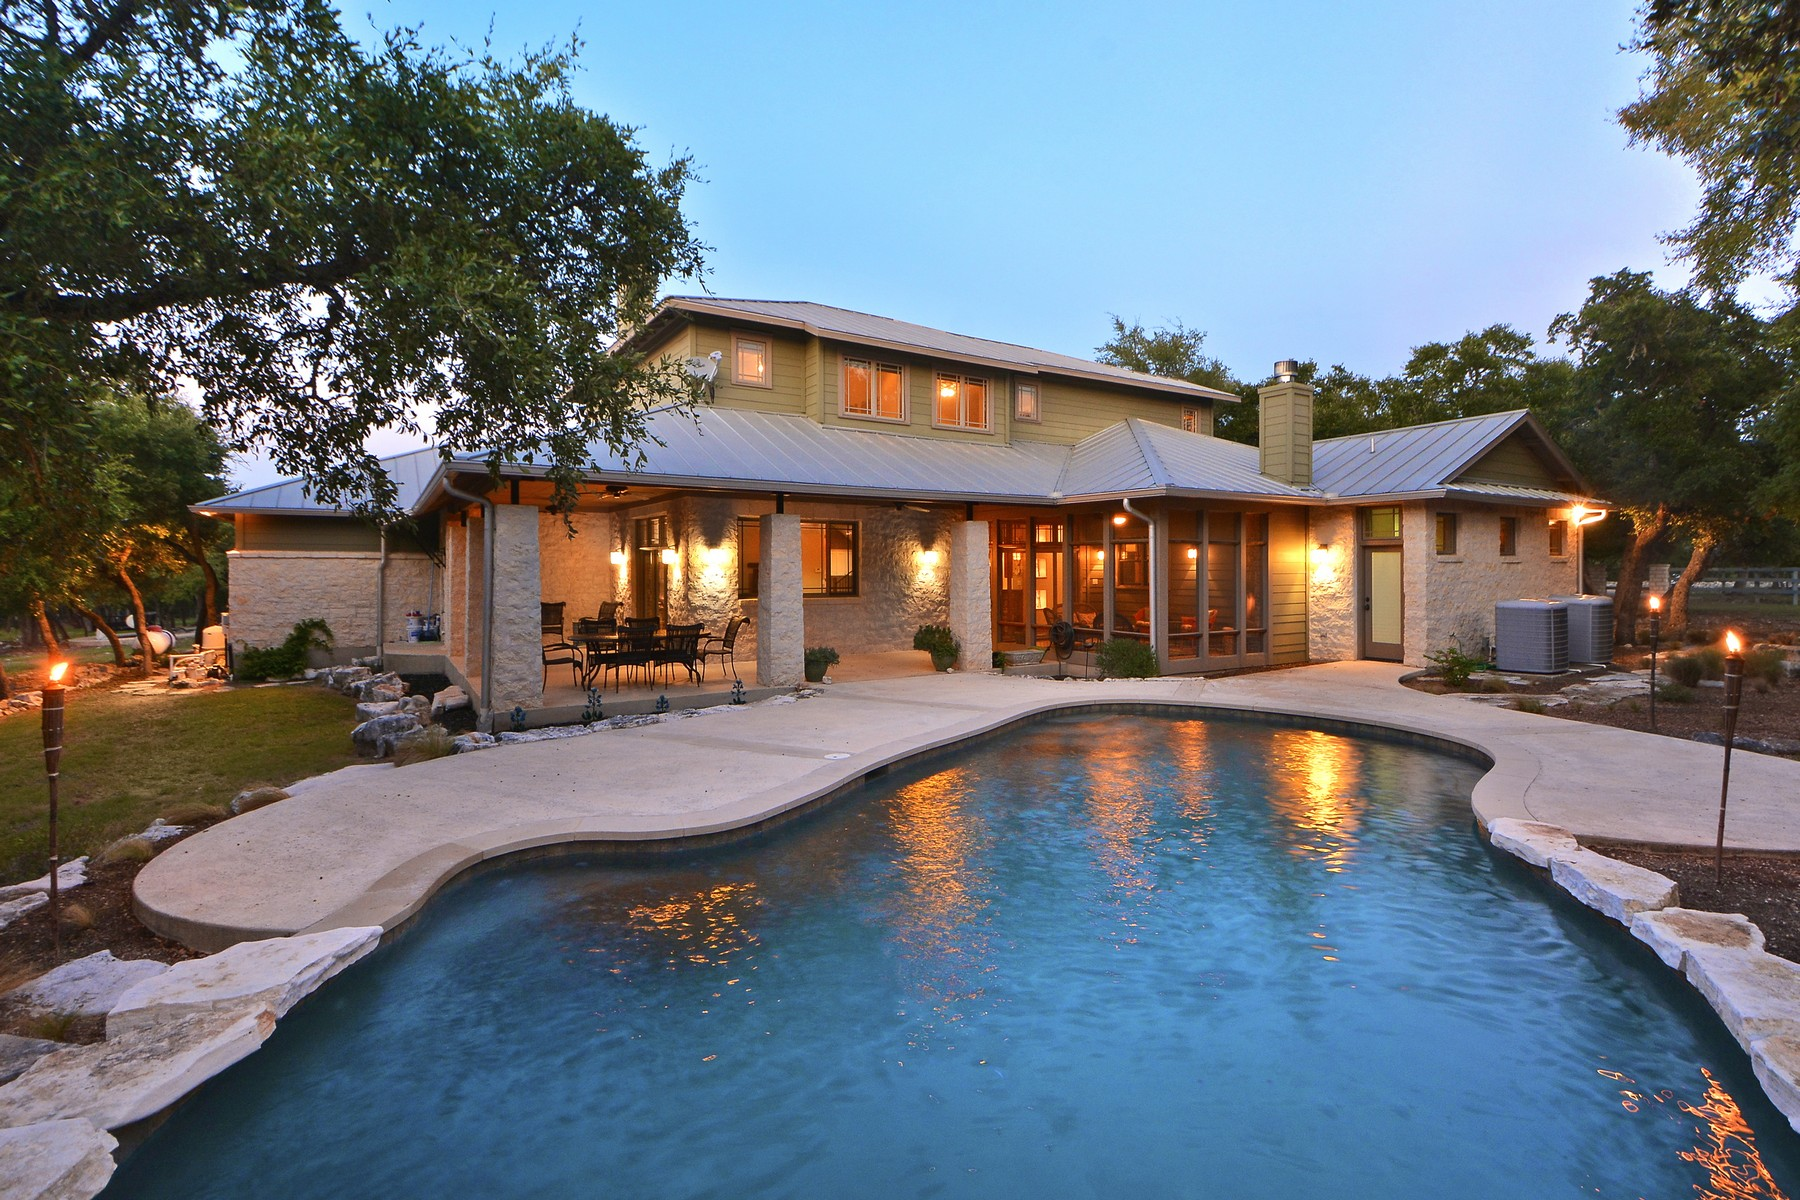 Casa Unifamiliar por un Venta en Wimberley Wonder on 10 acres 322 Trail Ridge Rd Wimberley, Texas 78676 Estados Unidos